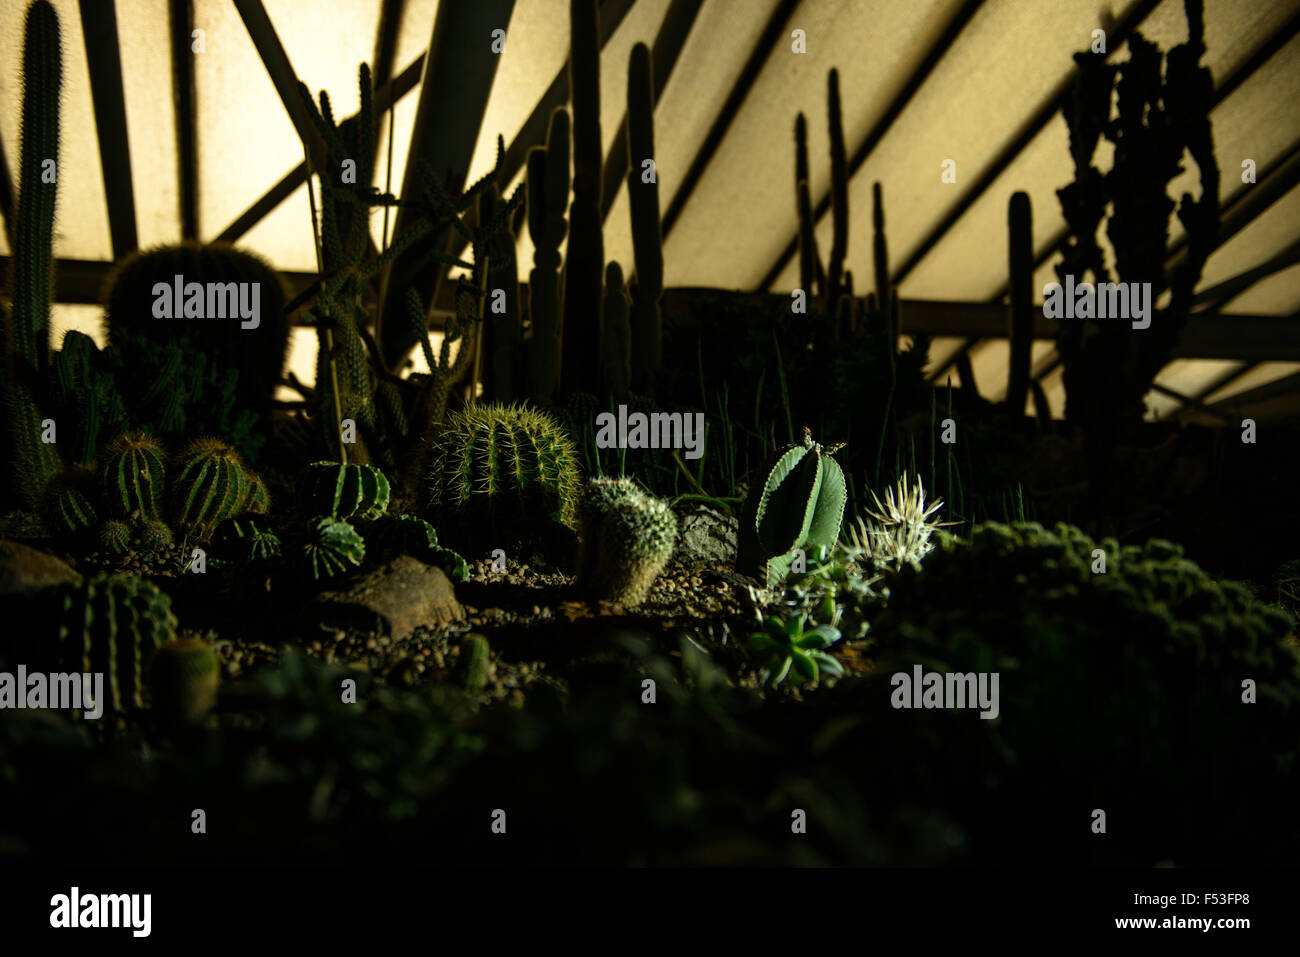 cactusses dramaticaly sidelit in a greenhouse at night - Stock Image